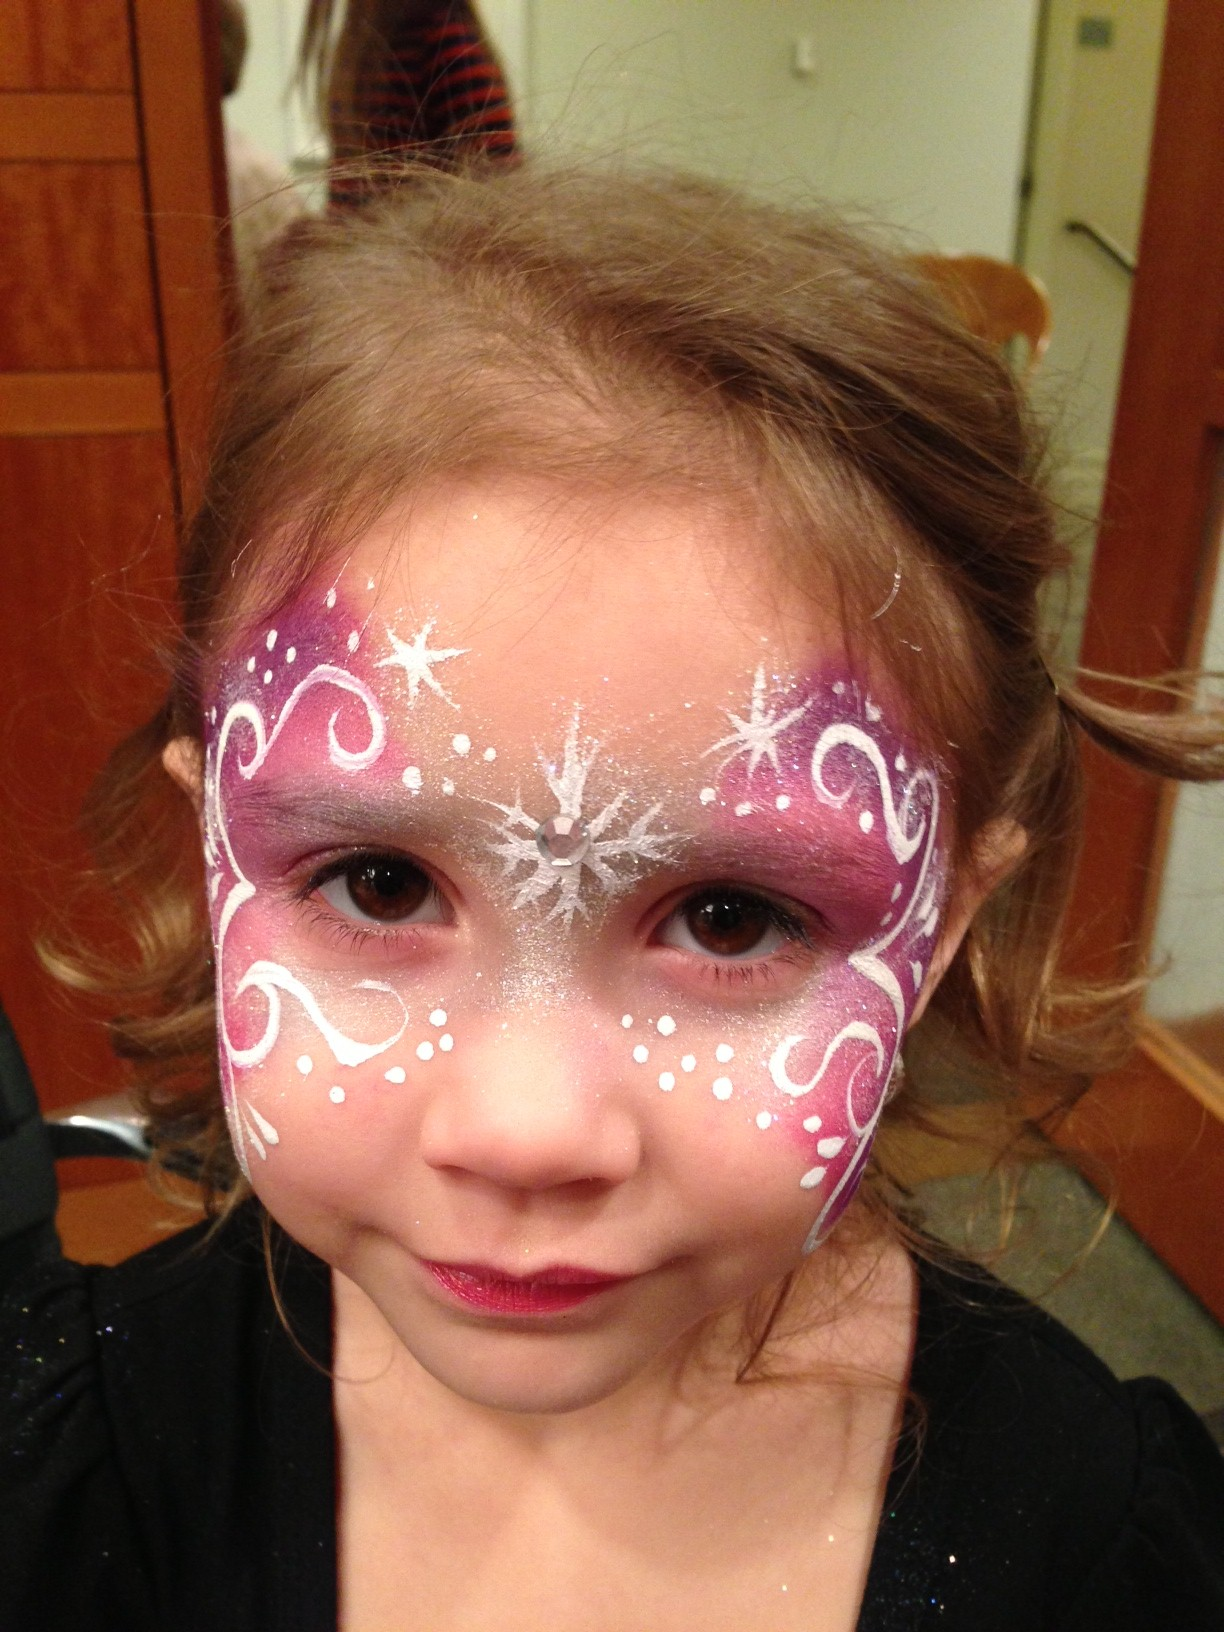 kid's holiday face painting www.glittermenyc.com ‹ Glitter